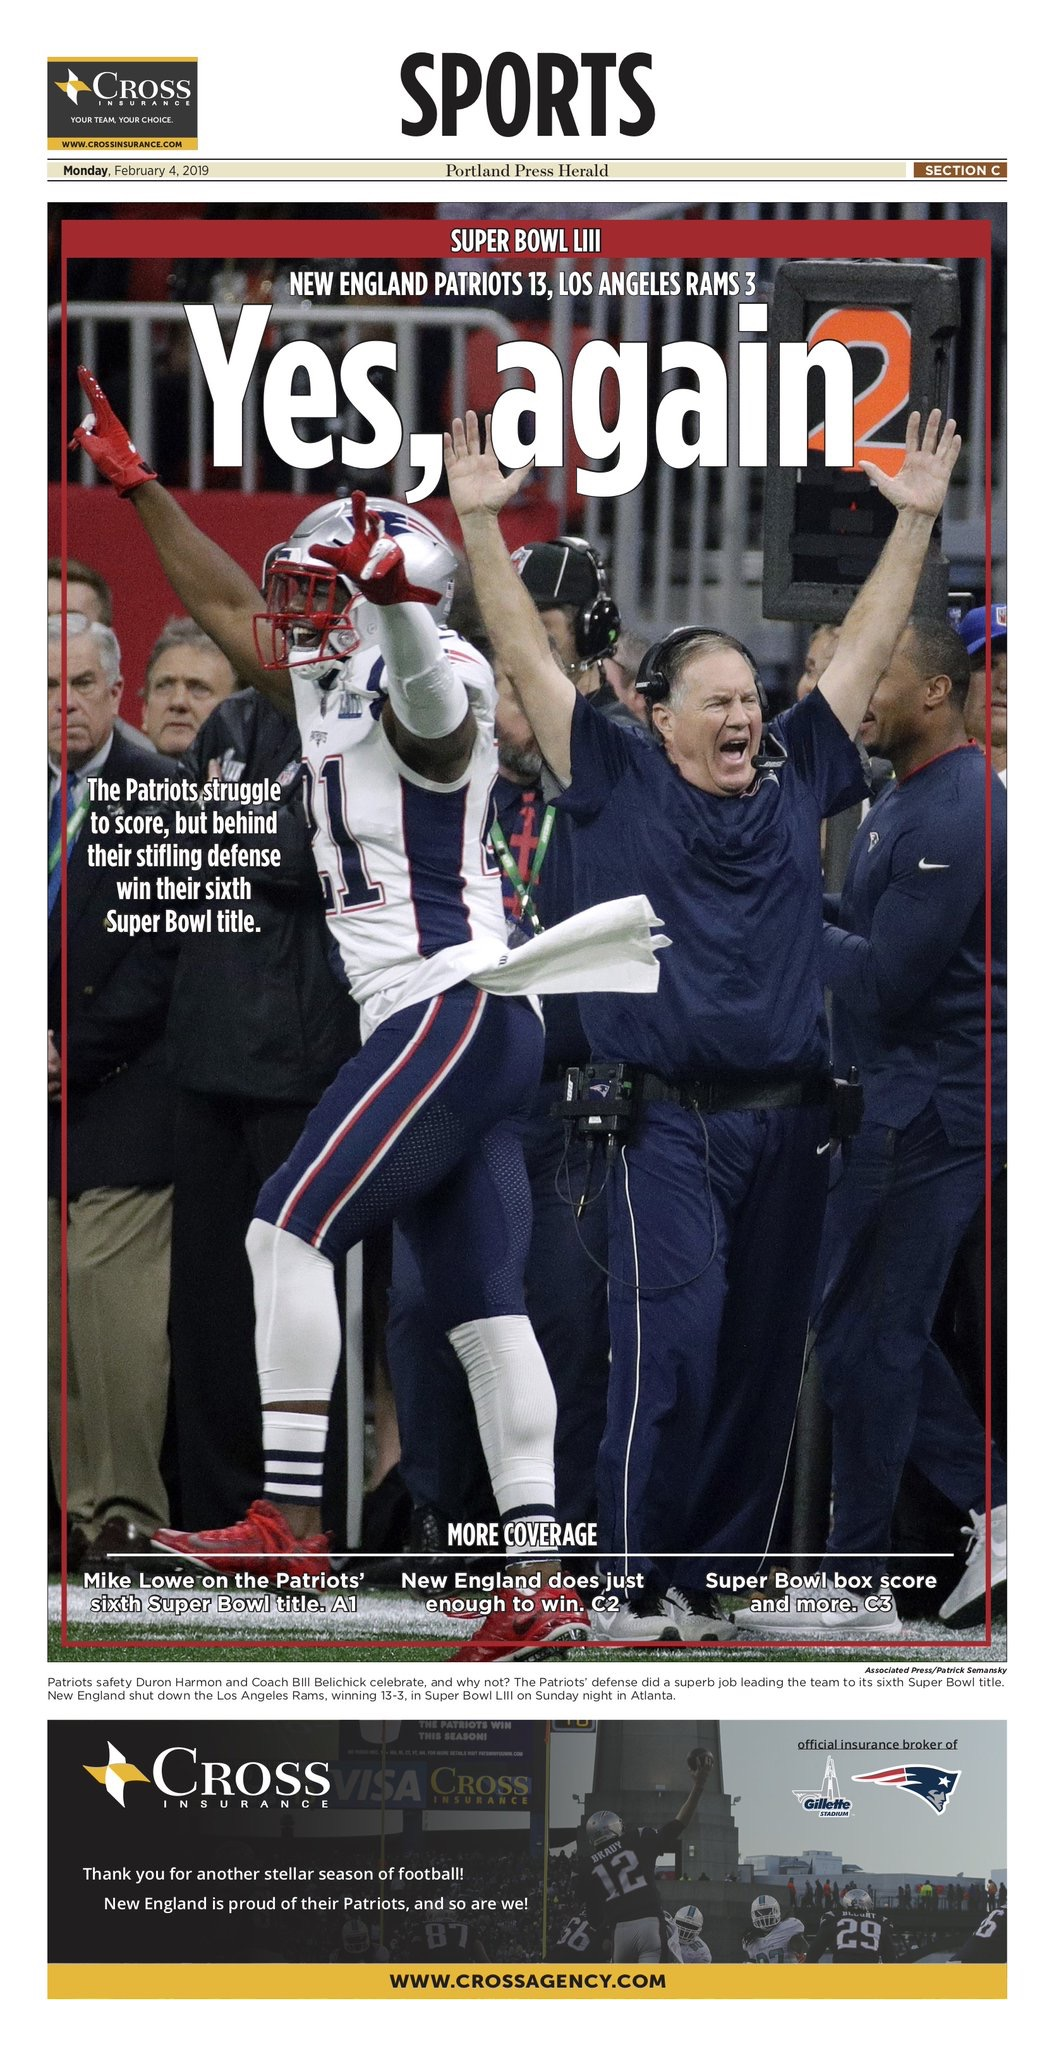 New England Patriots Win Super Bowl LIII – Sports Front Pages